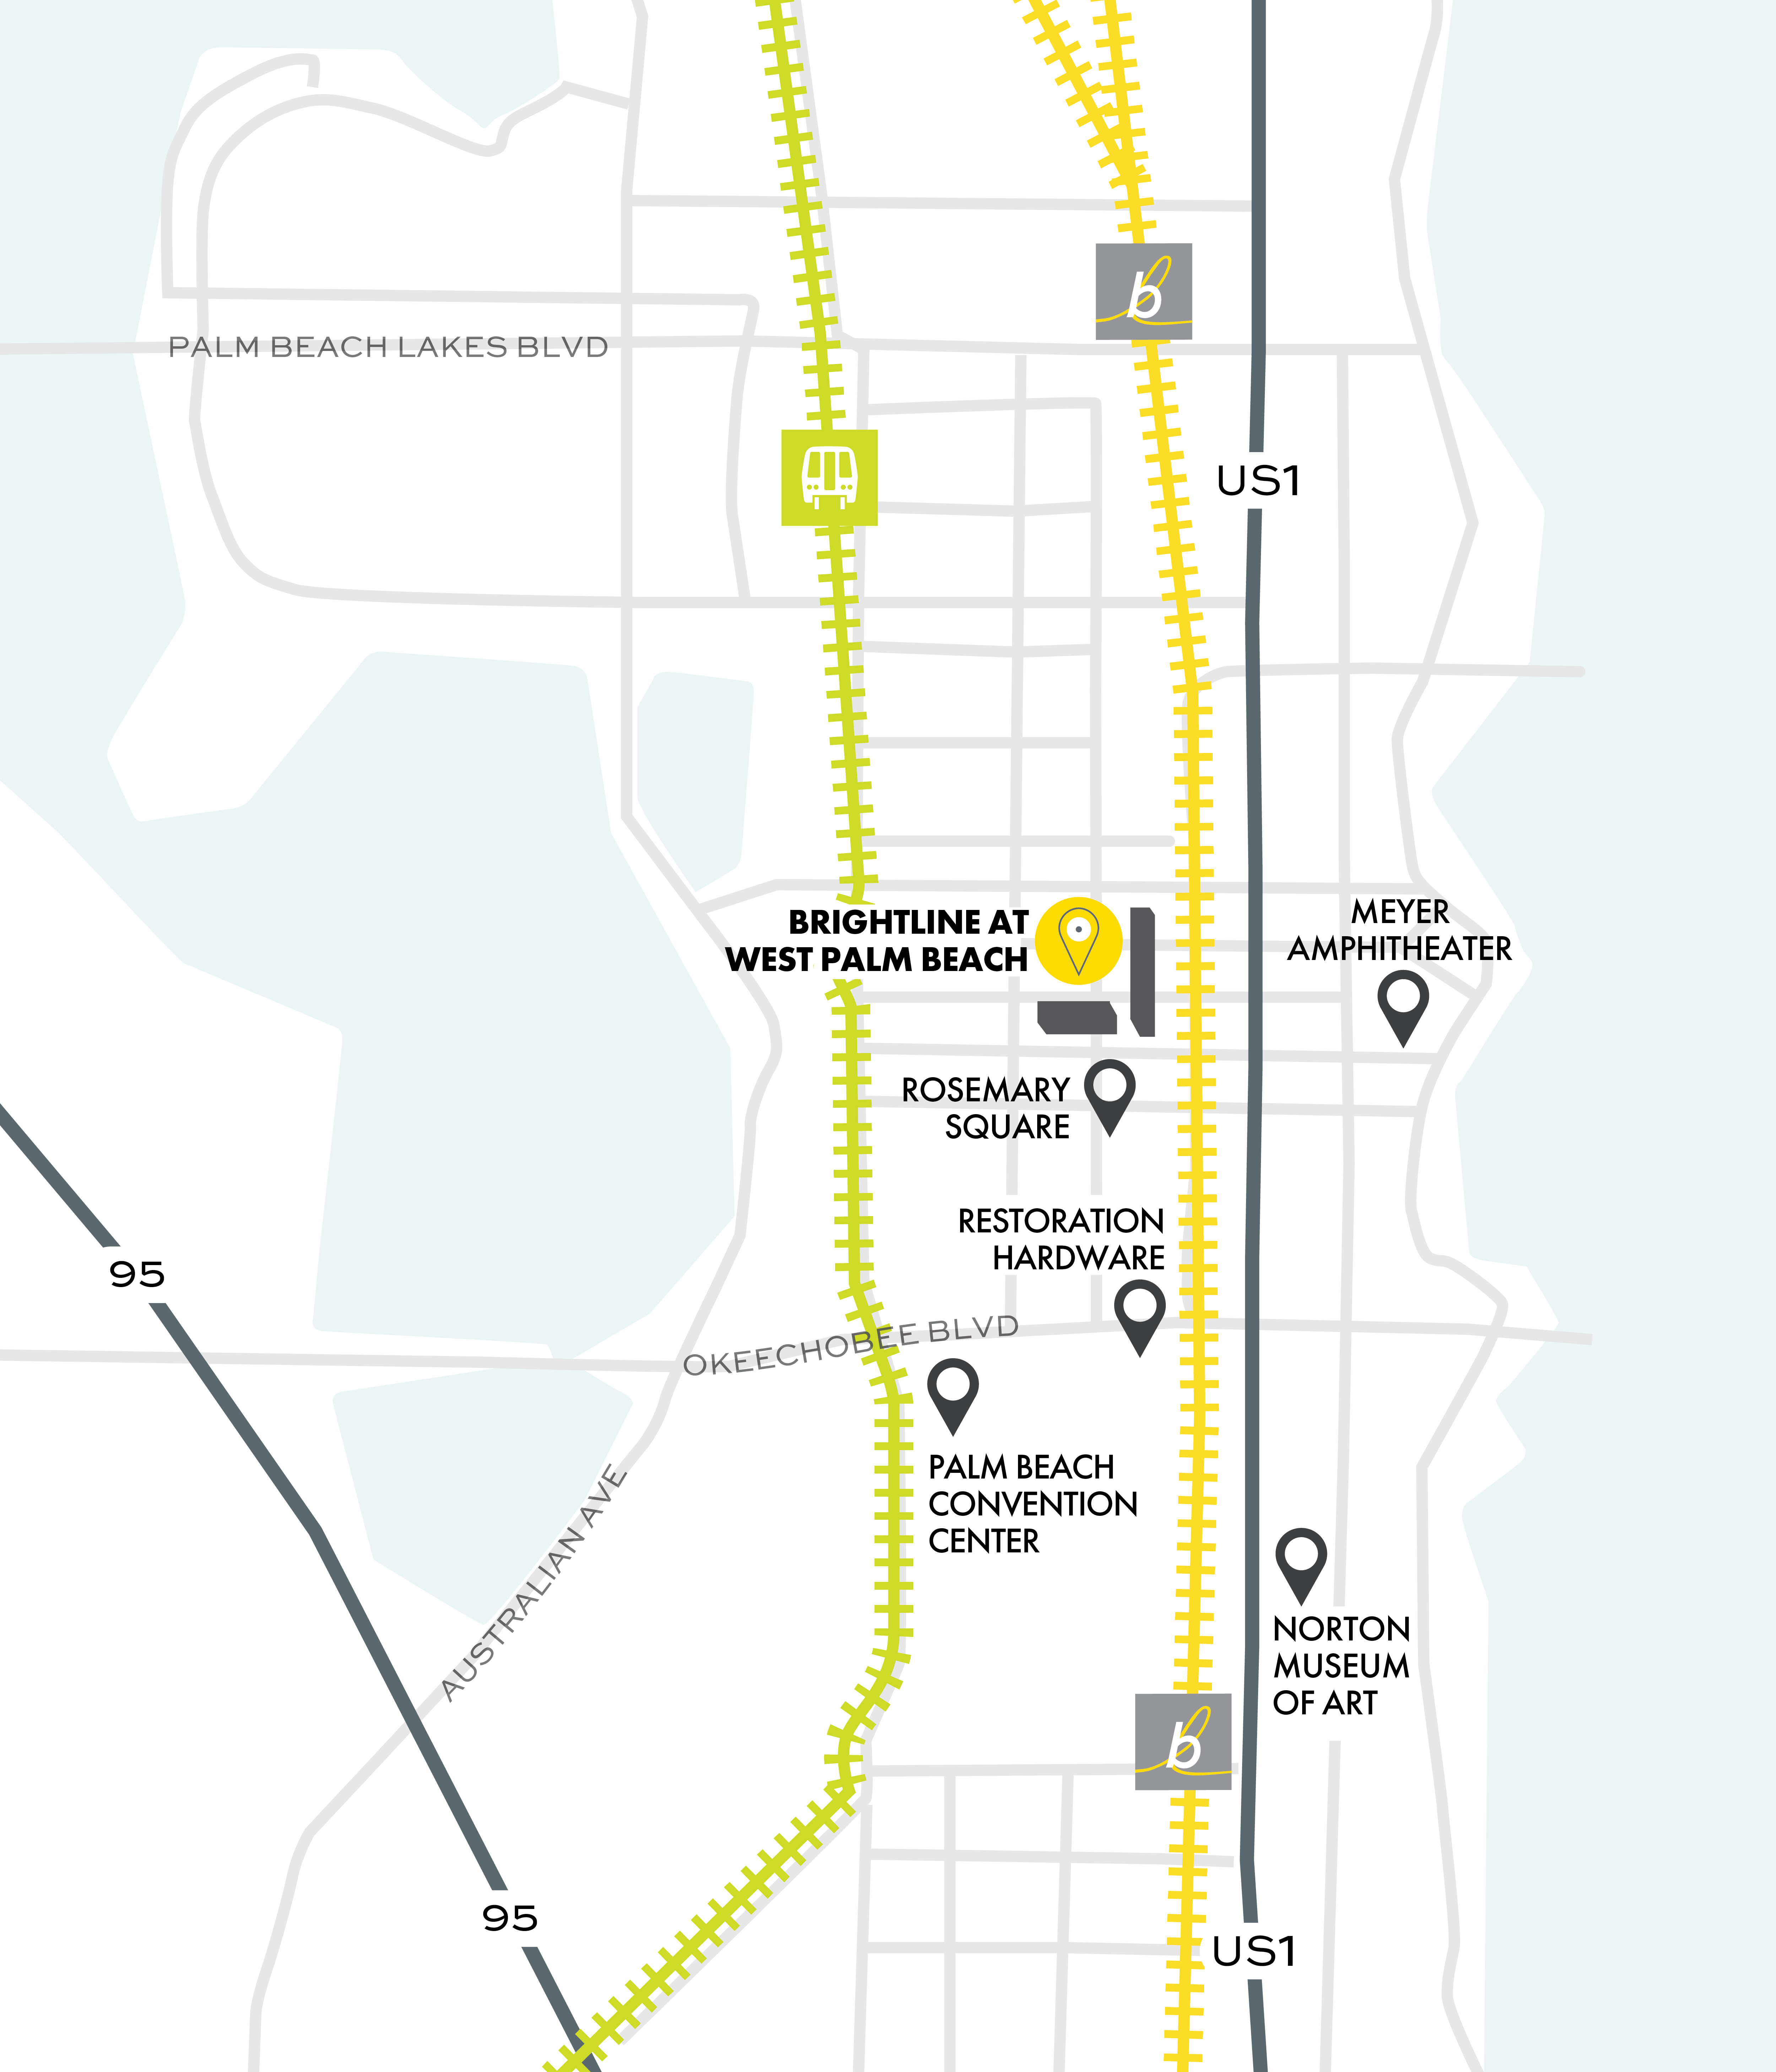 West Palm Beach service map with nearby attractions.